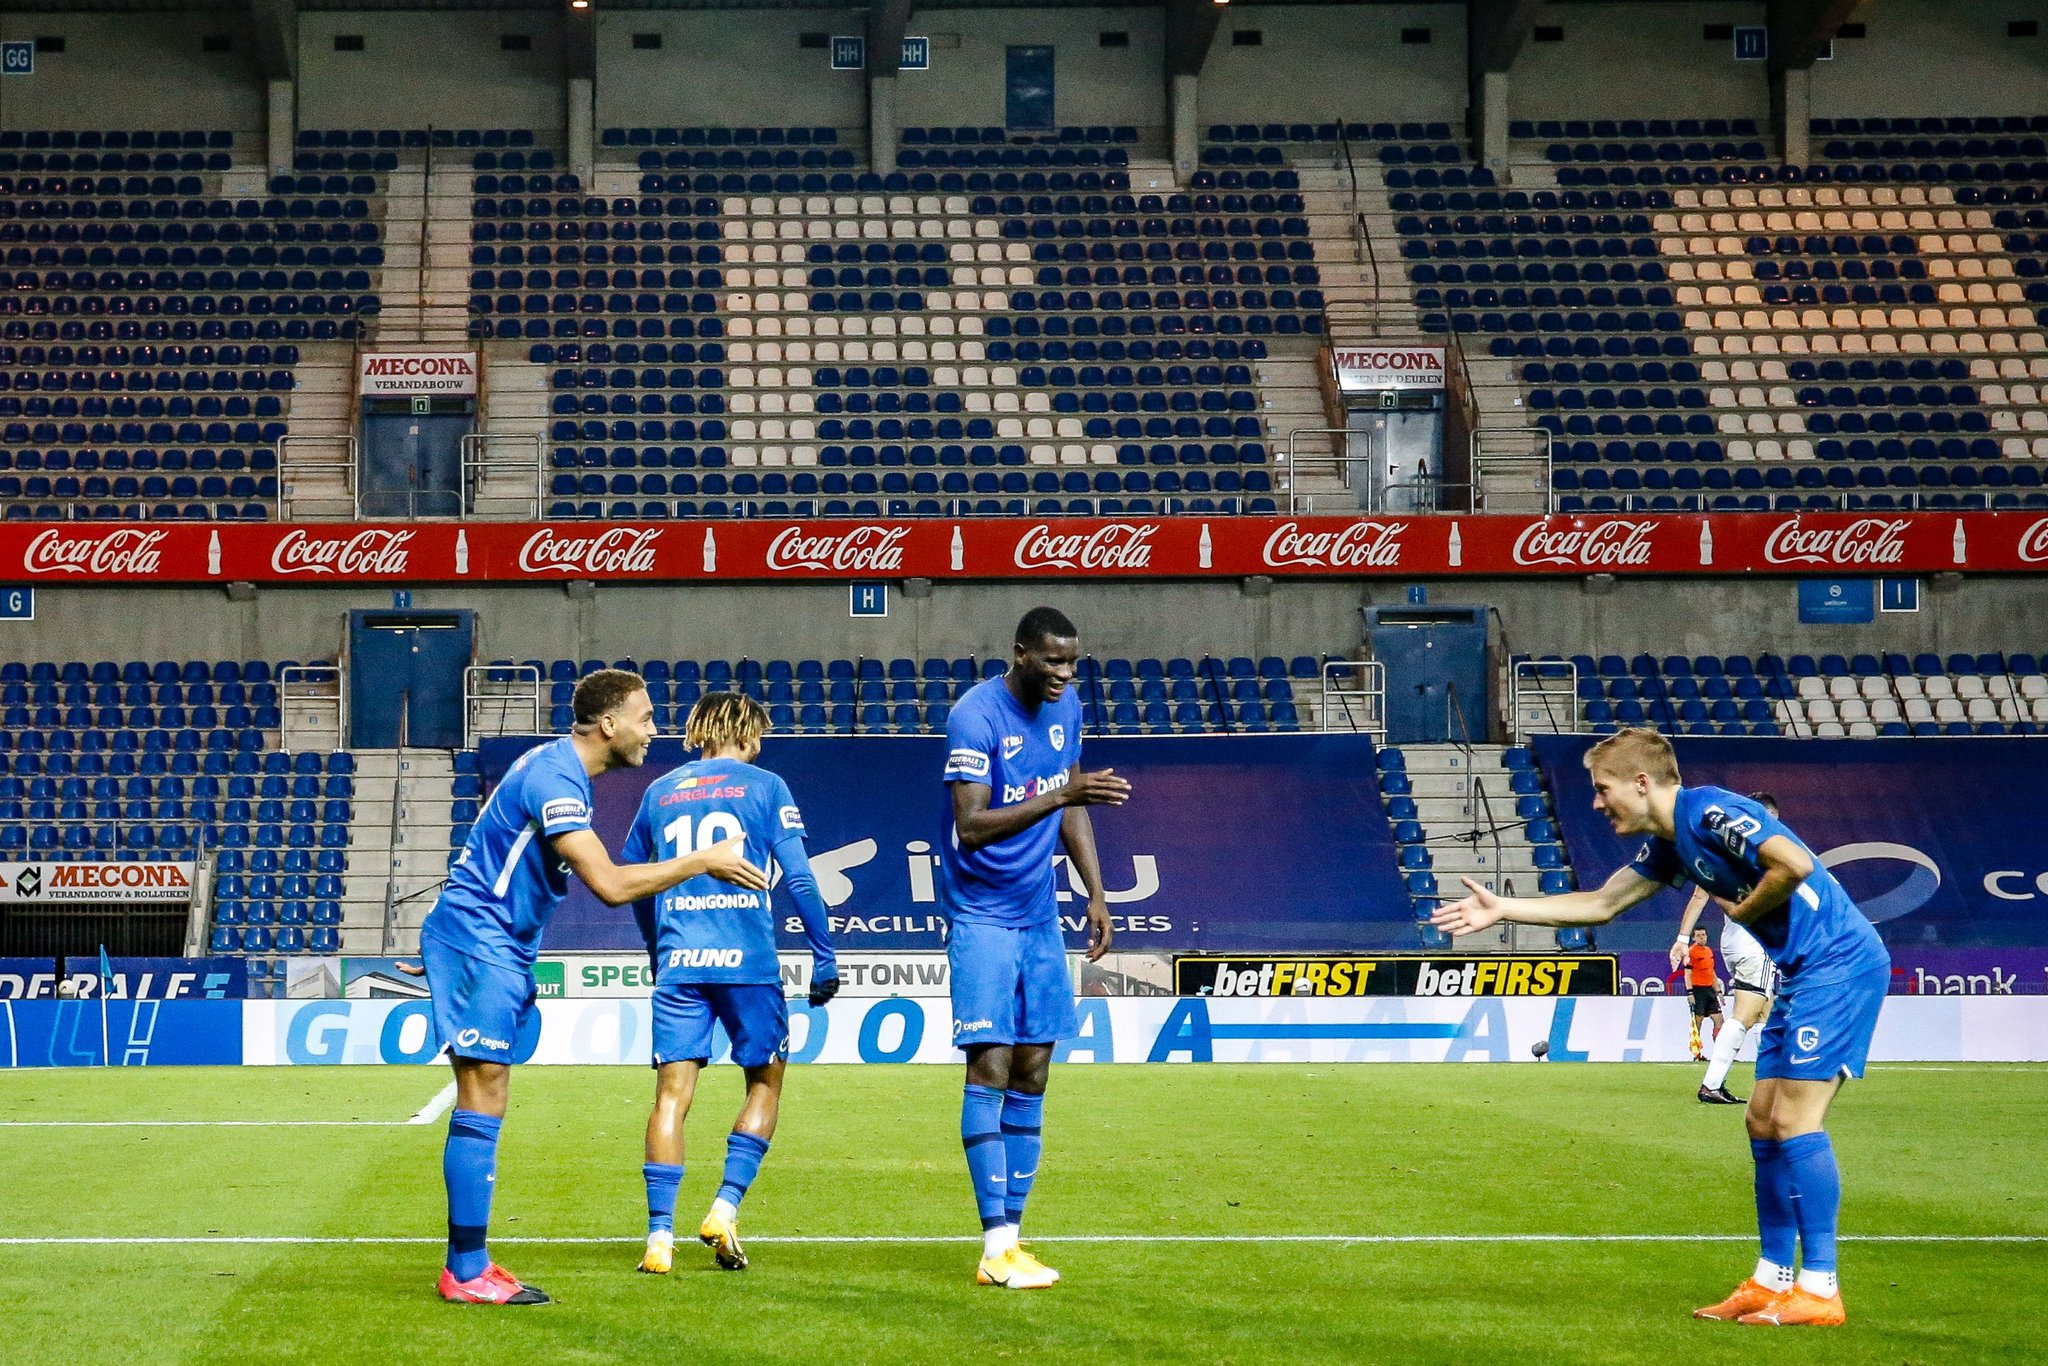 Eagles Roundup: Red-Hot  Onuachu Scores Again For Genk;  Dessers, Nwakaeme Also On Target